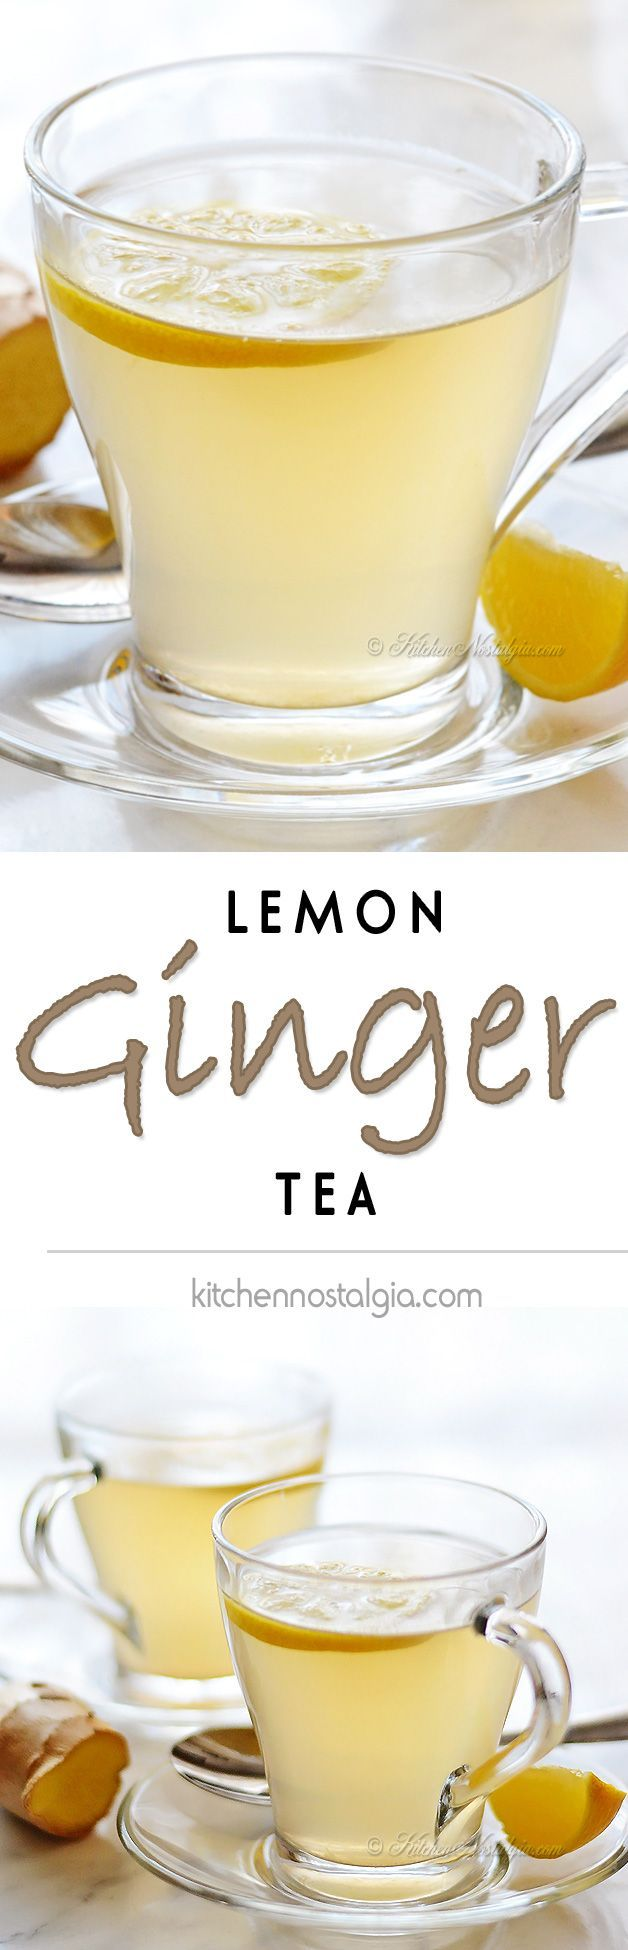 Lemon Ginger Tea - kitchennostalgia.com